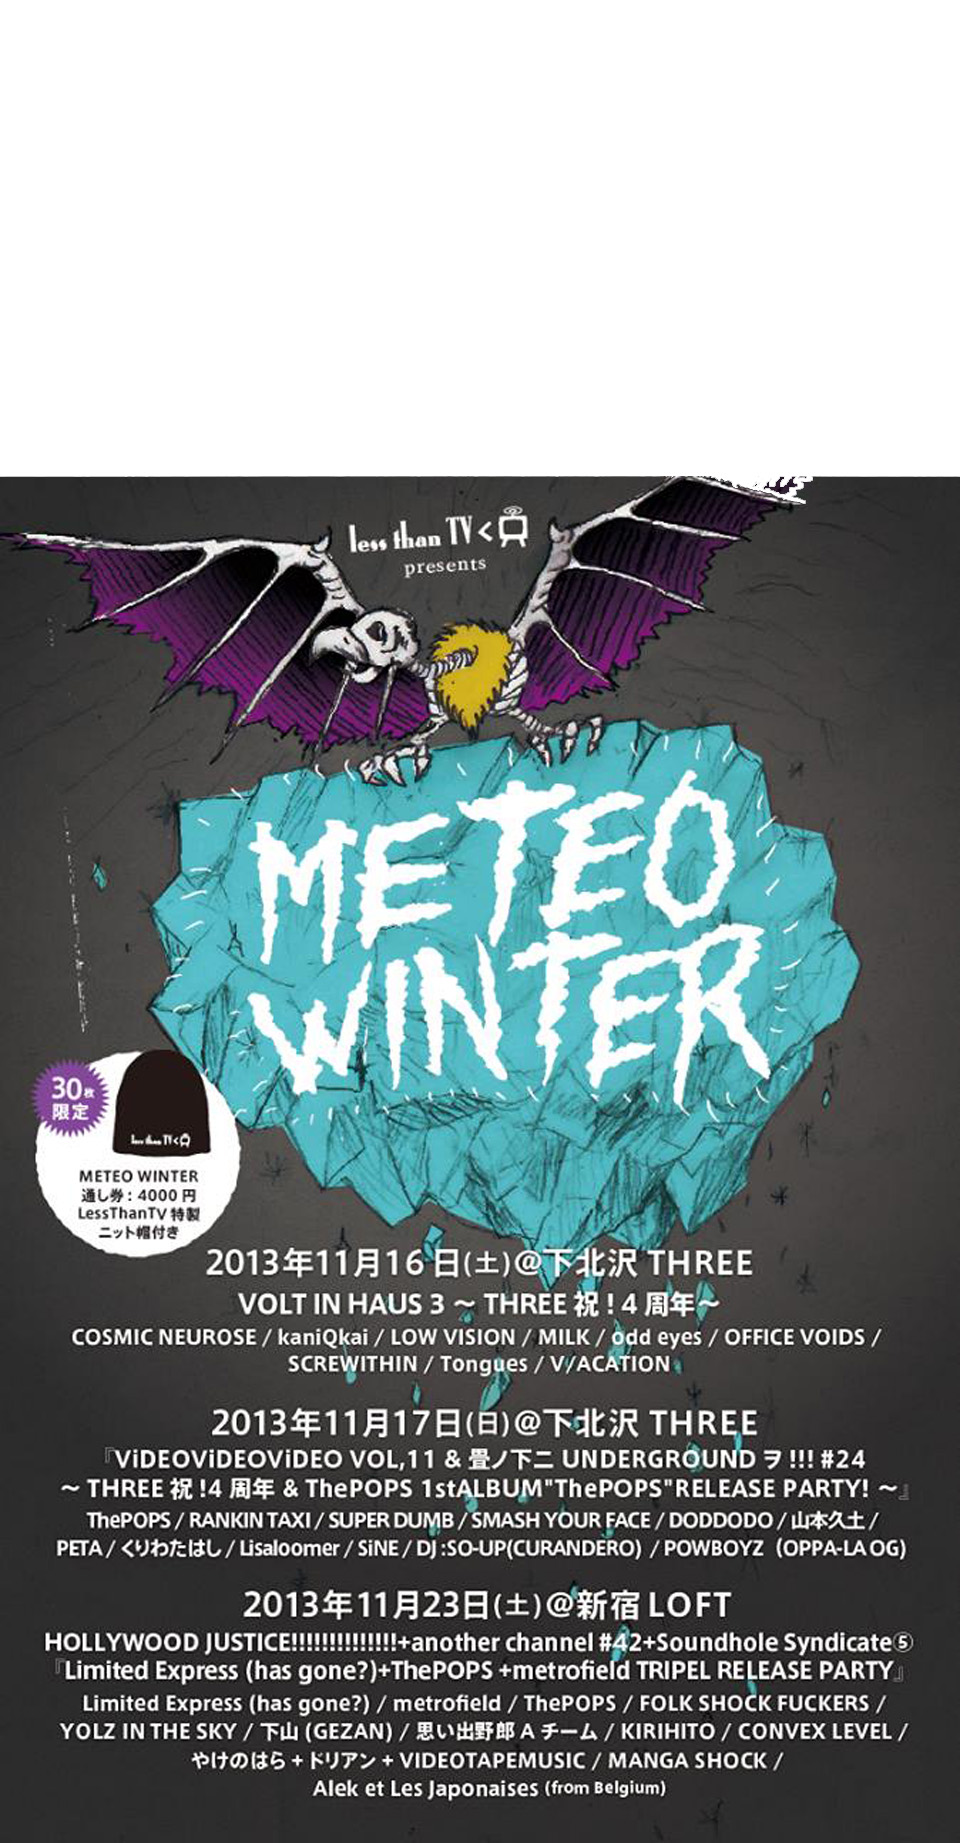 Meteo winter